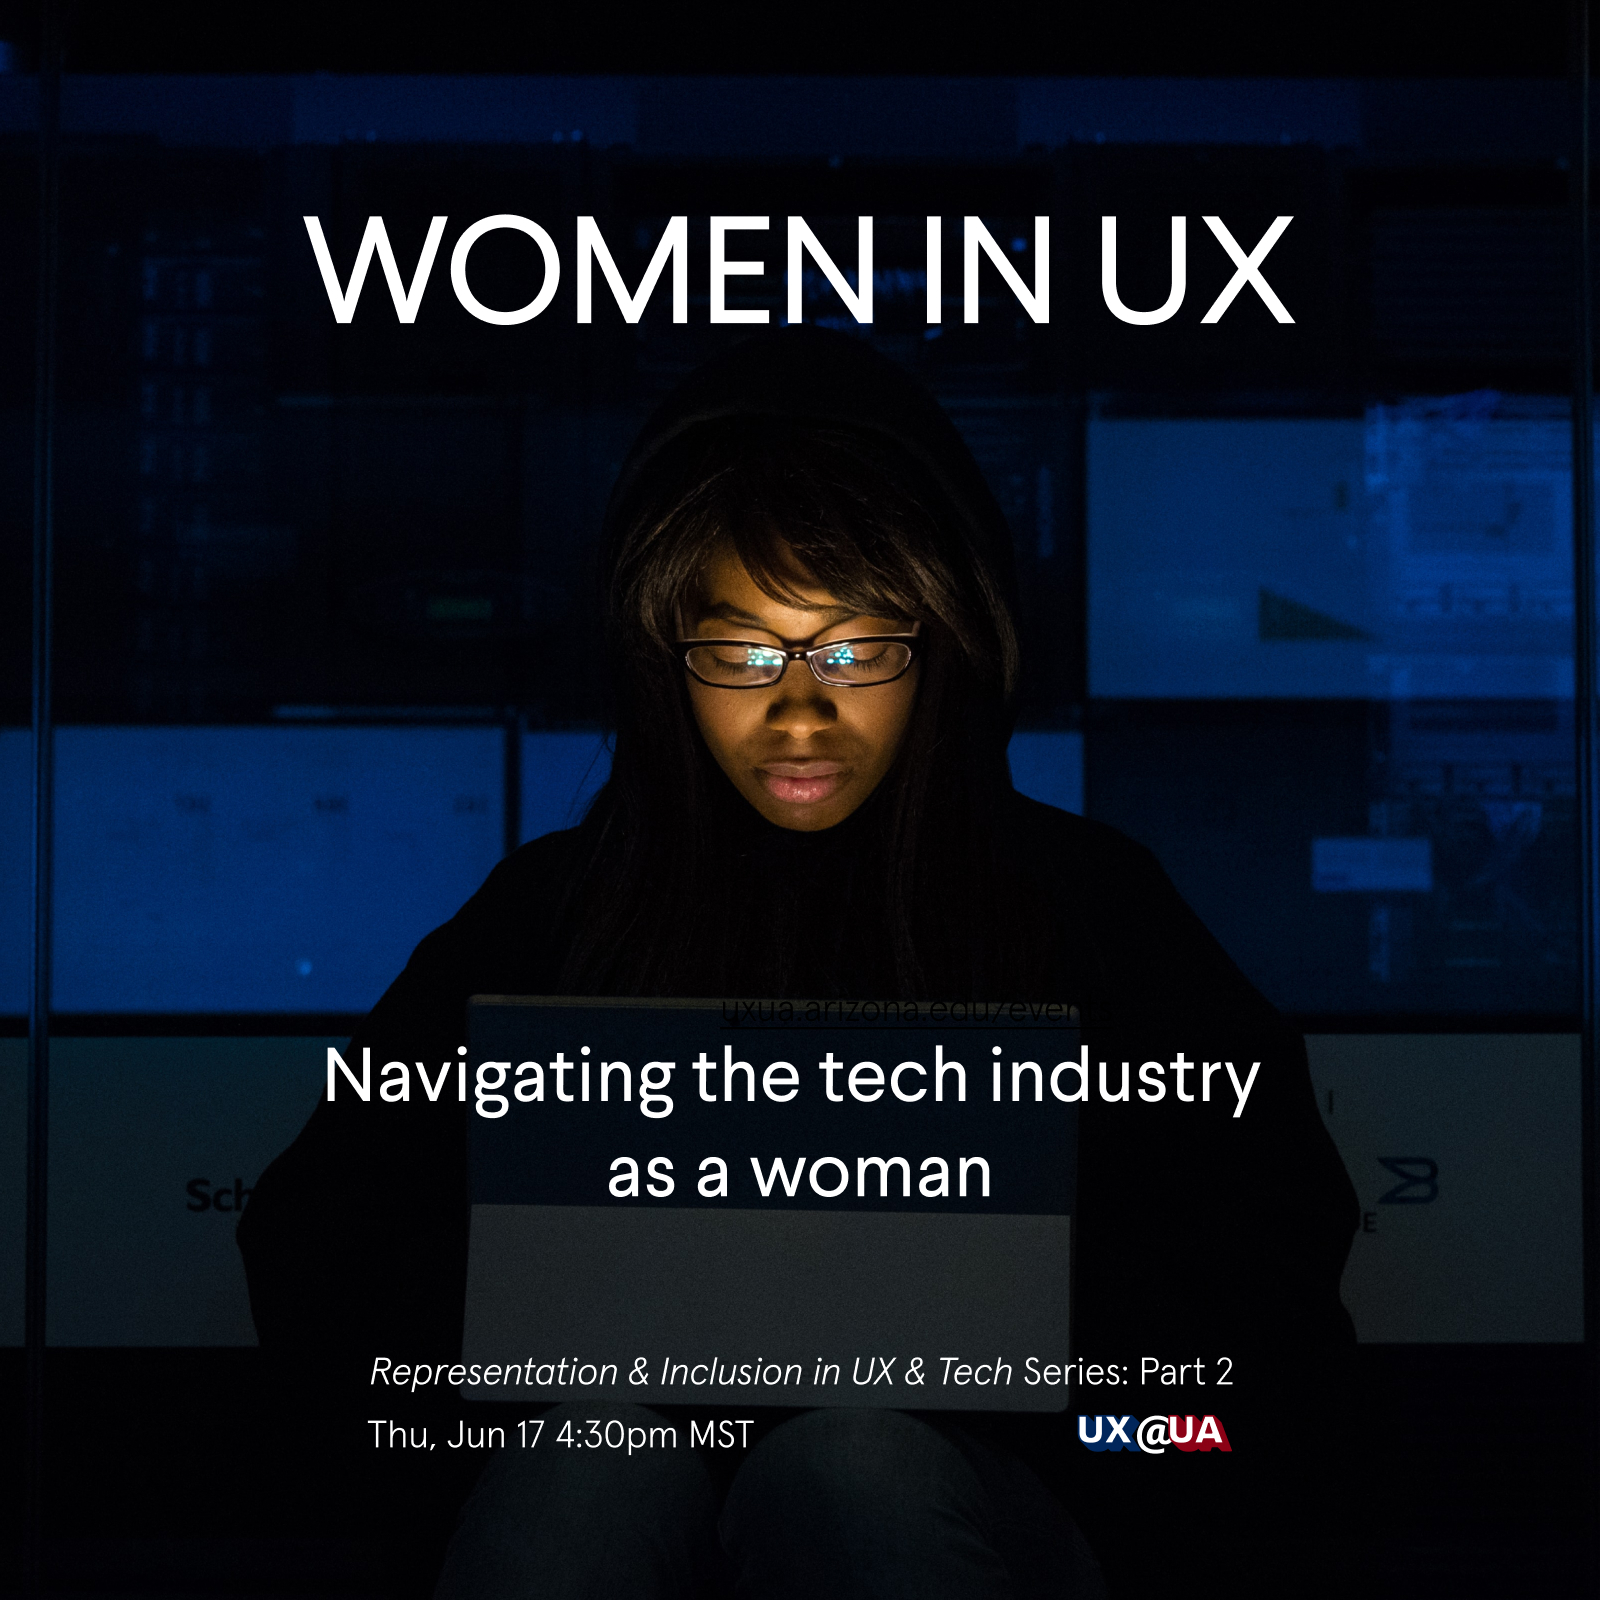 Women in UX: Navigating the Tech Industry as a Woman